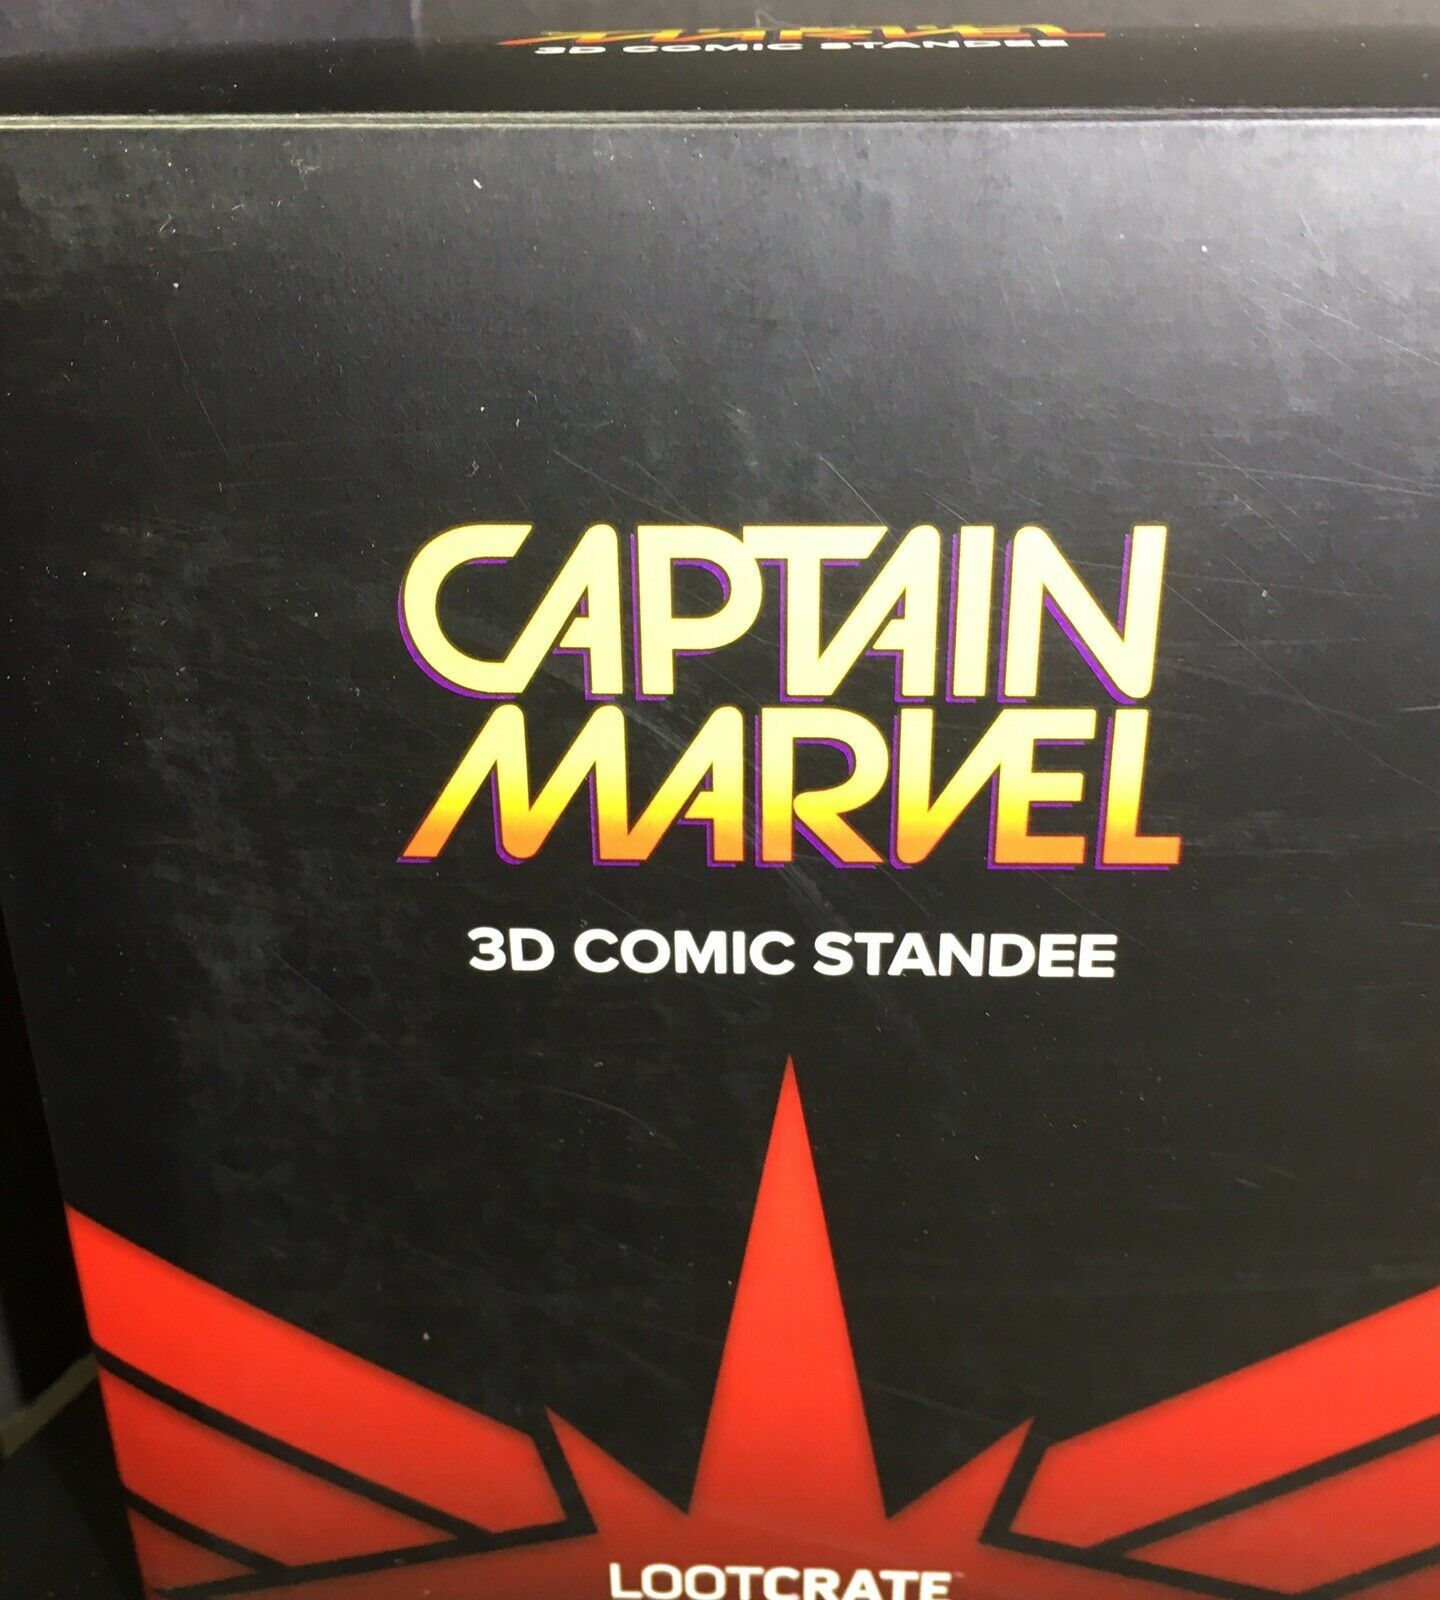 Captain Marvel 3D Comic Standee Loot Crate Exclusive March 2019 Brie Larson